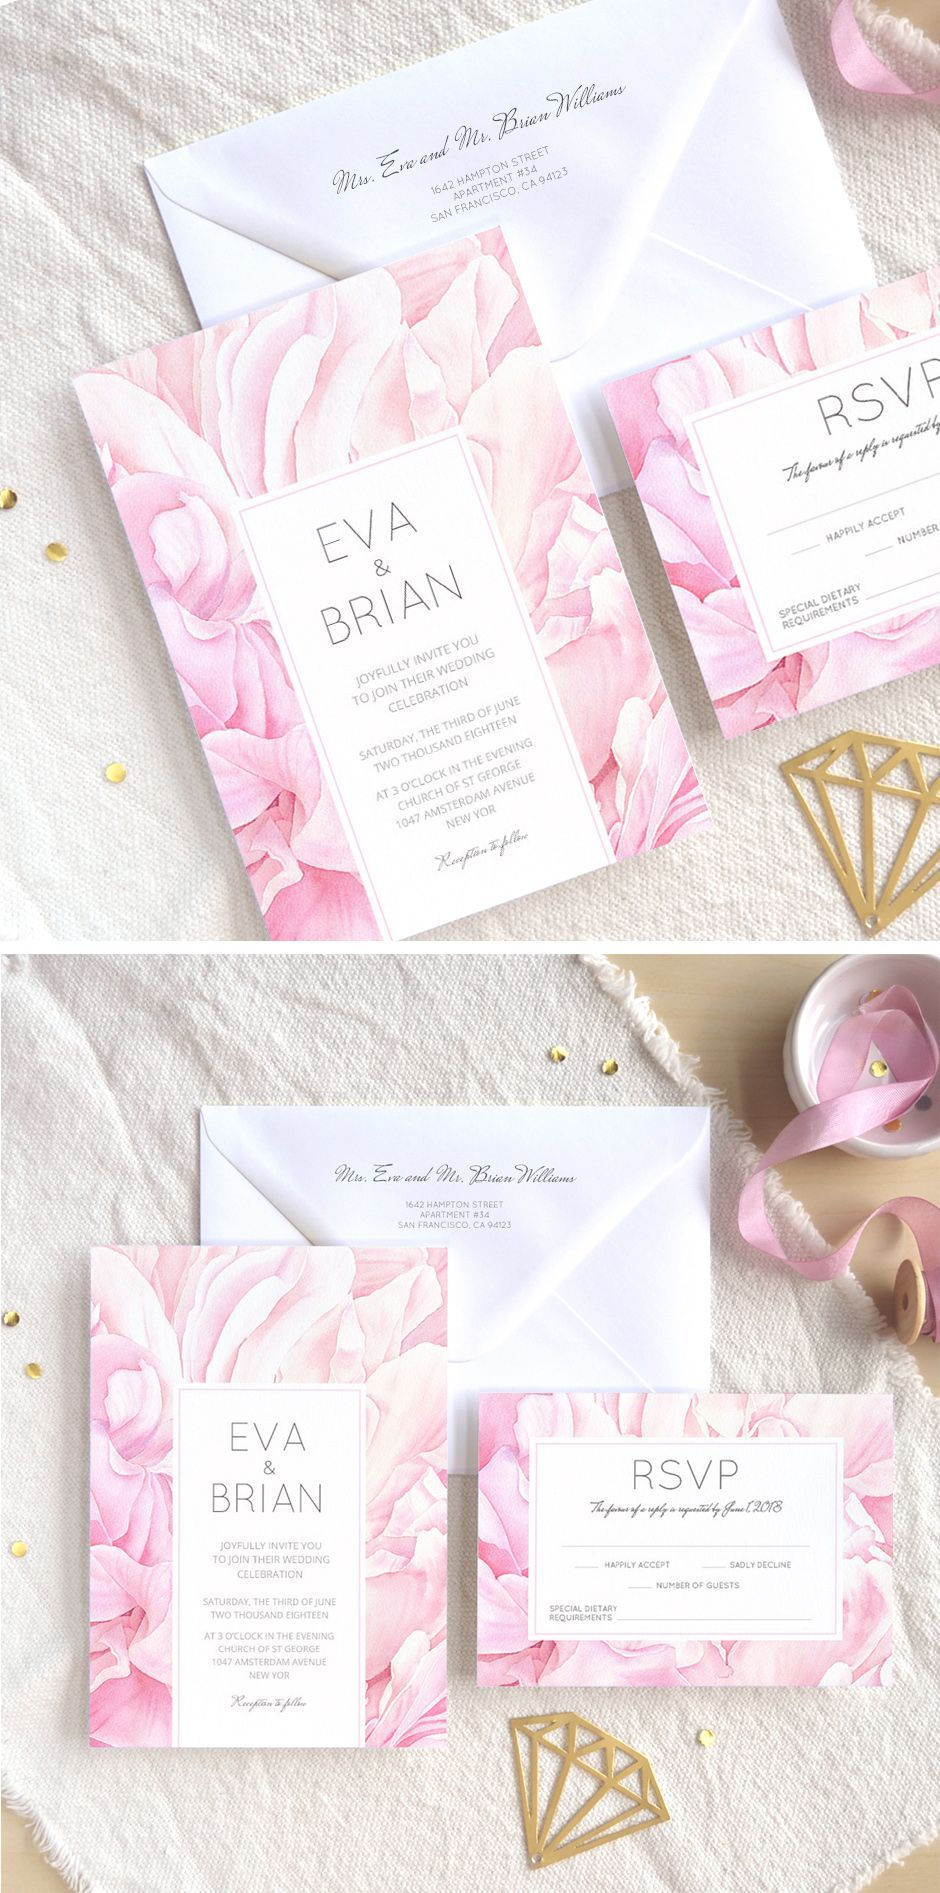 Peony Petals in Pink - Personalised wedding invitation suite with ...